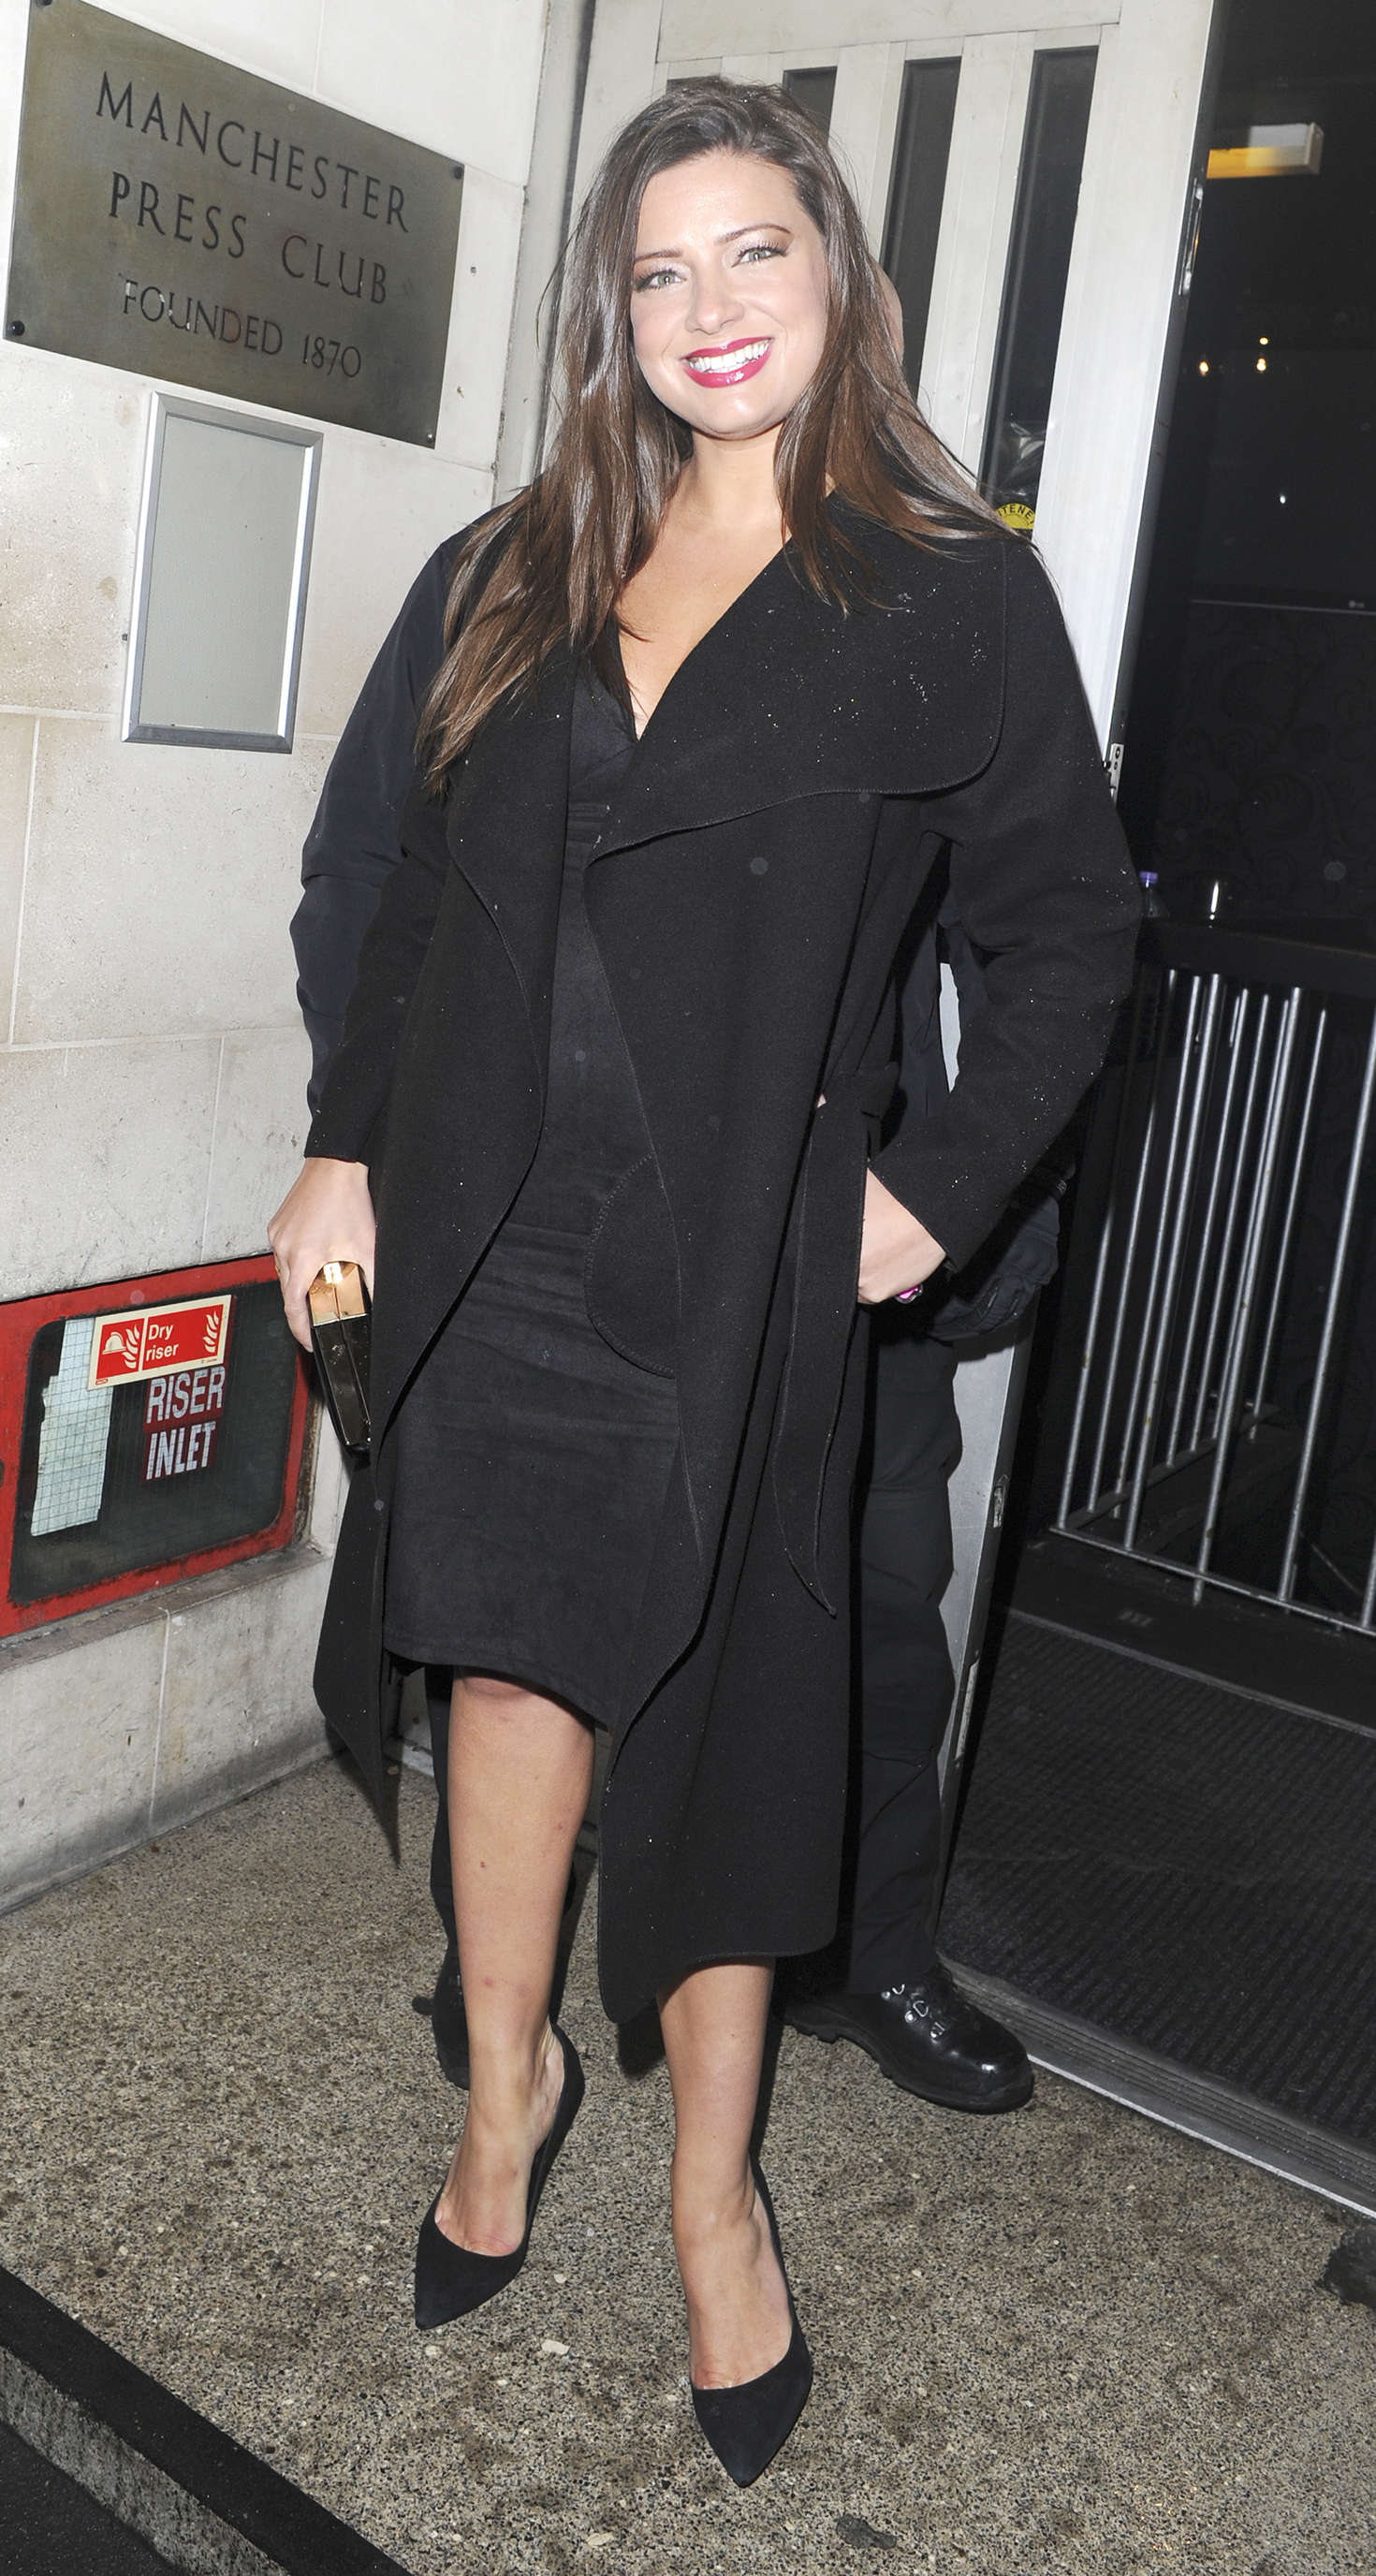 Sophie Austin at Kieron Richardsons Birthday Party in Manchaster